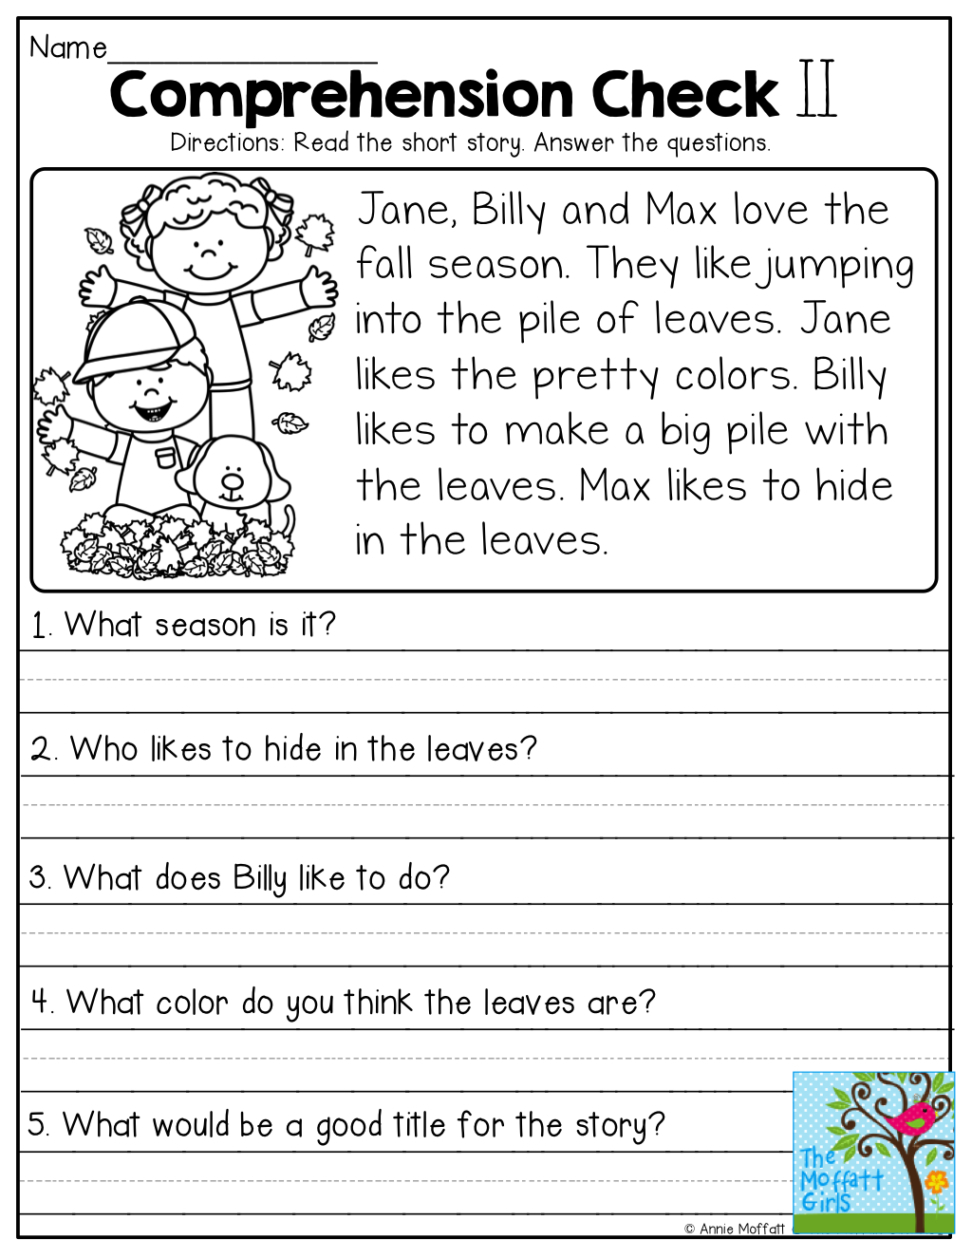 Worksheet. Free Printable Reading Comprehension Worksheets - Free | Free Printable Reading Comprehension Worksheets